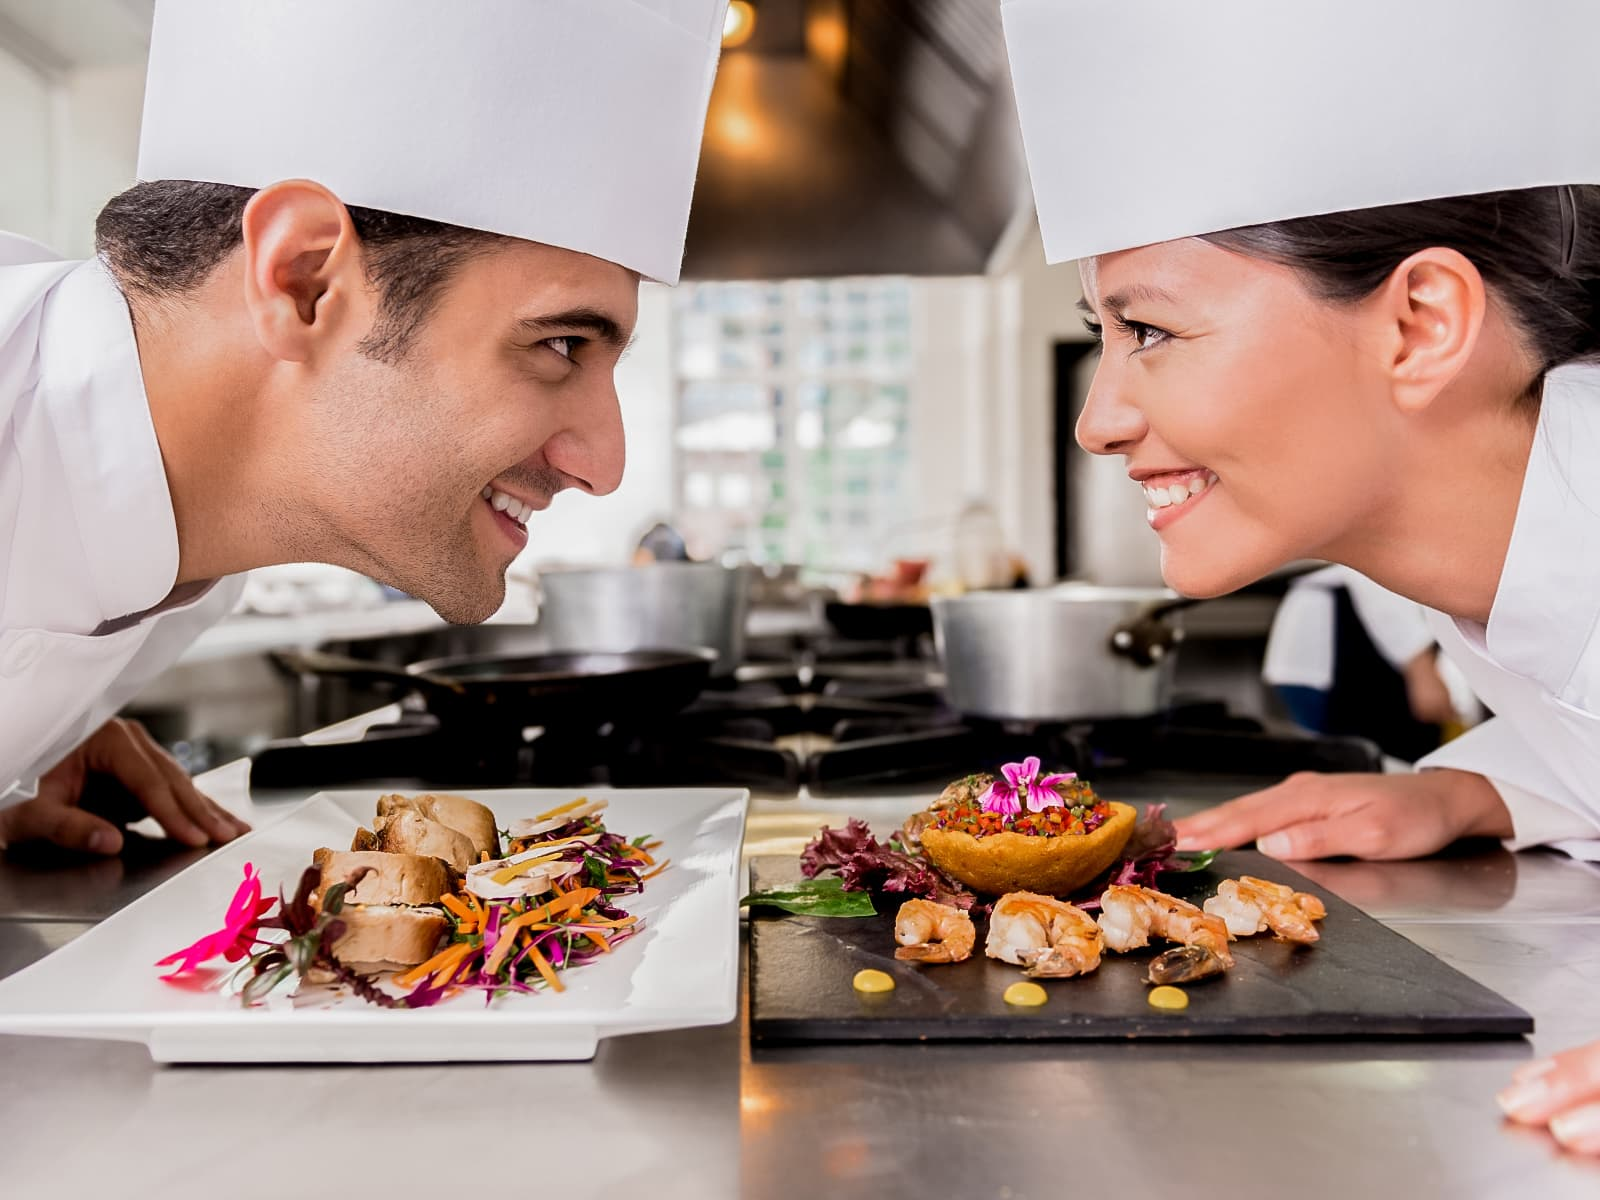 Two chefs leaning over, looking at each other, with their plates of food in front of them